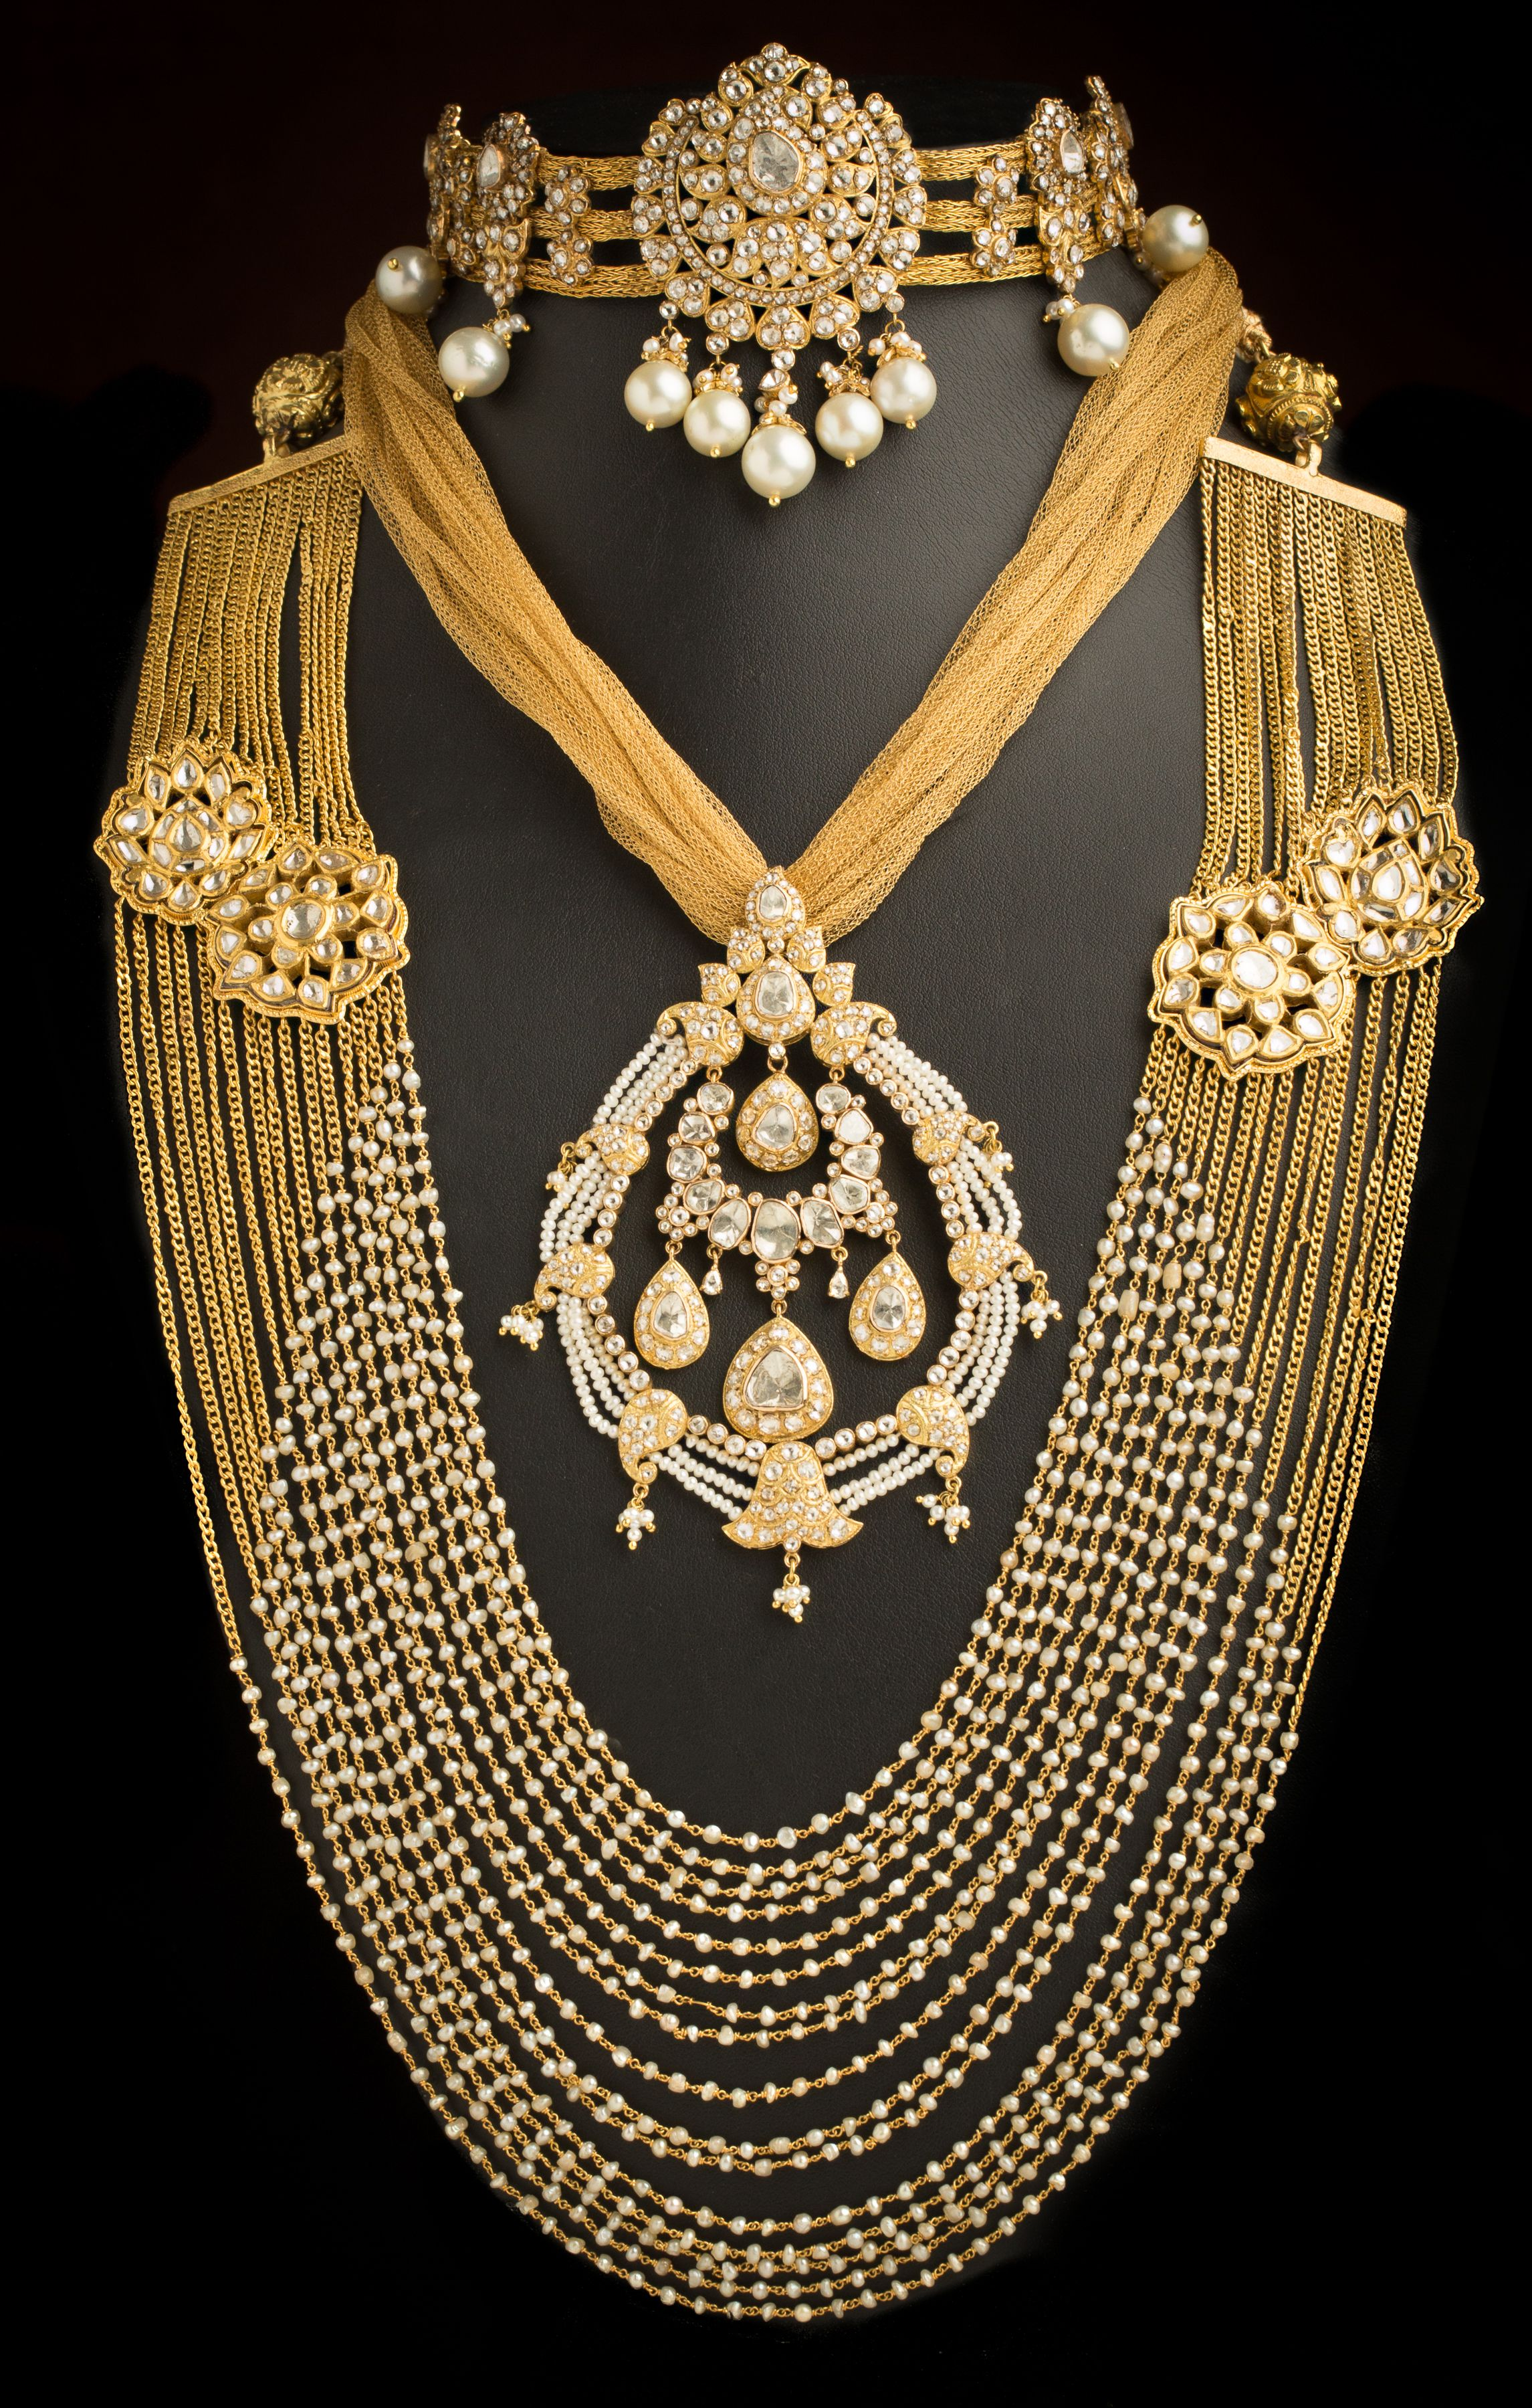 Melange of polkis diamonds gold and pearlsindian bridal jewellery